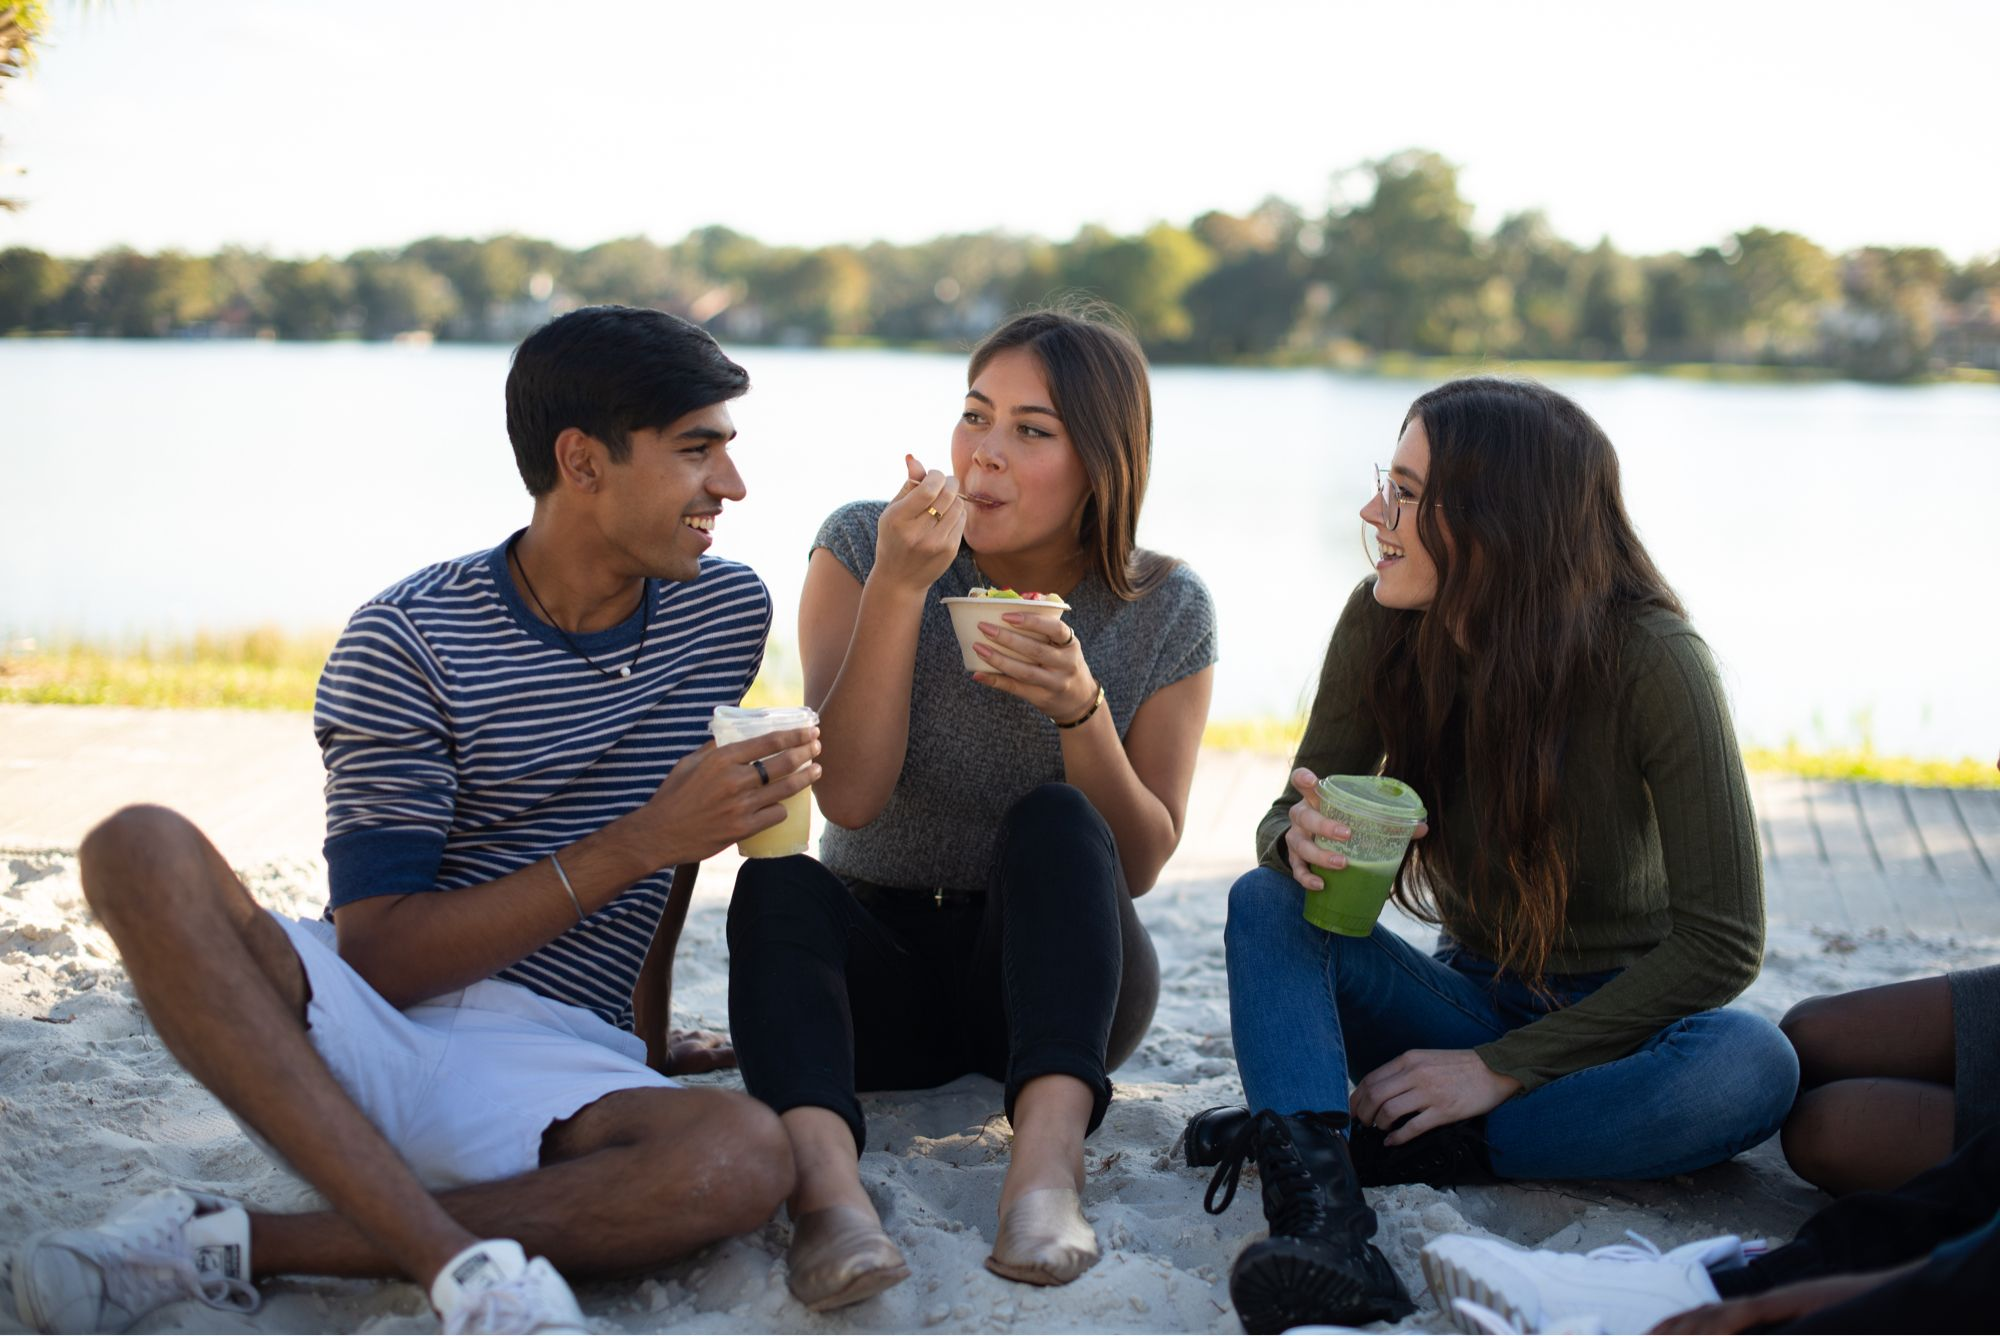 Students gather for a snack on the beach between classes.